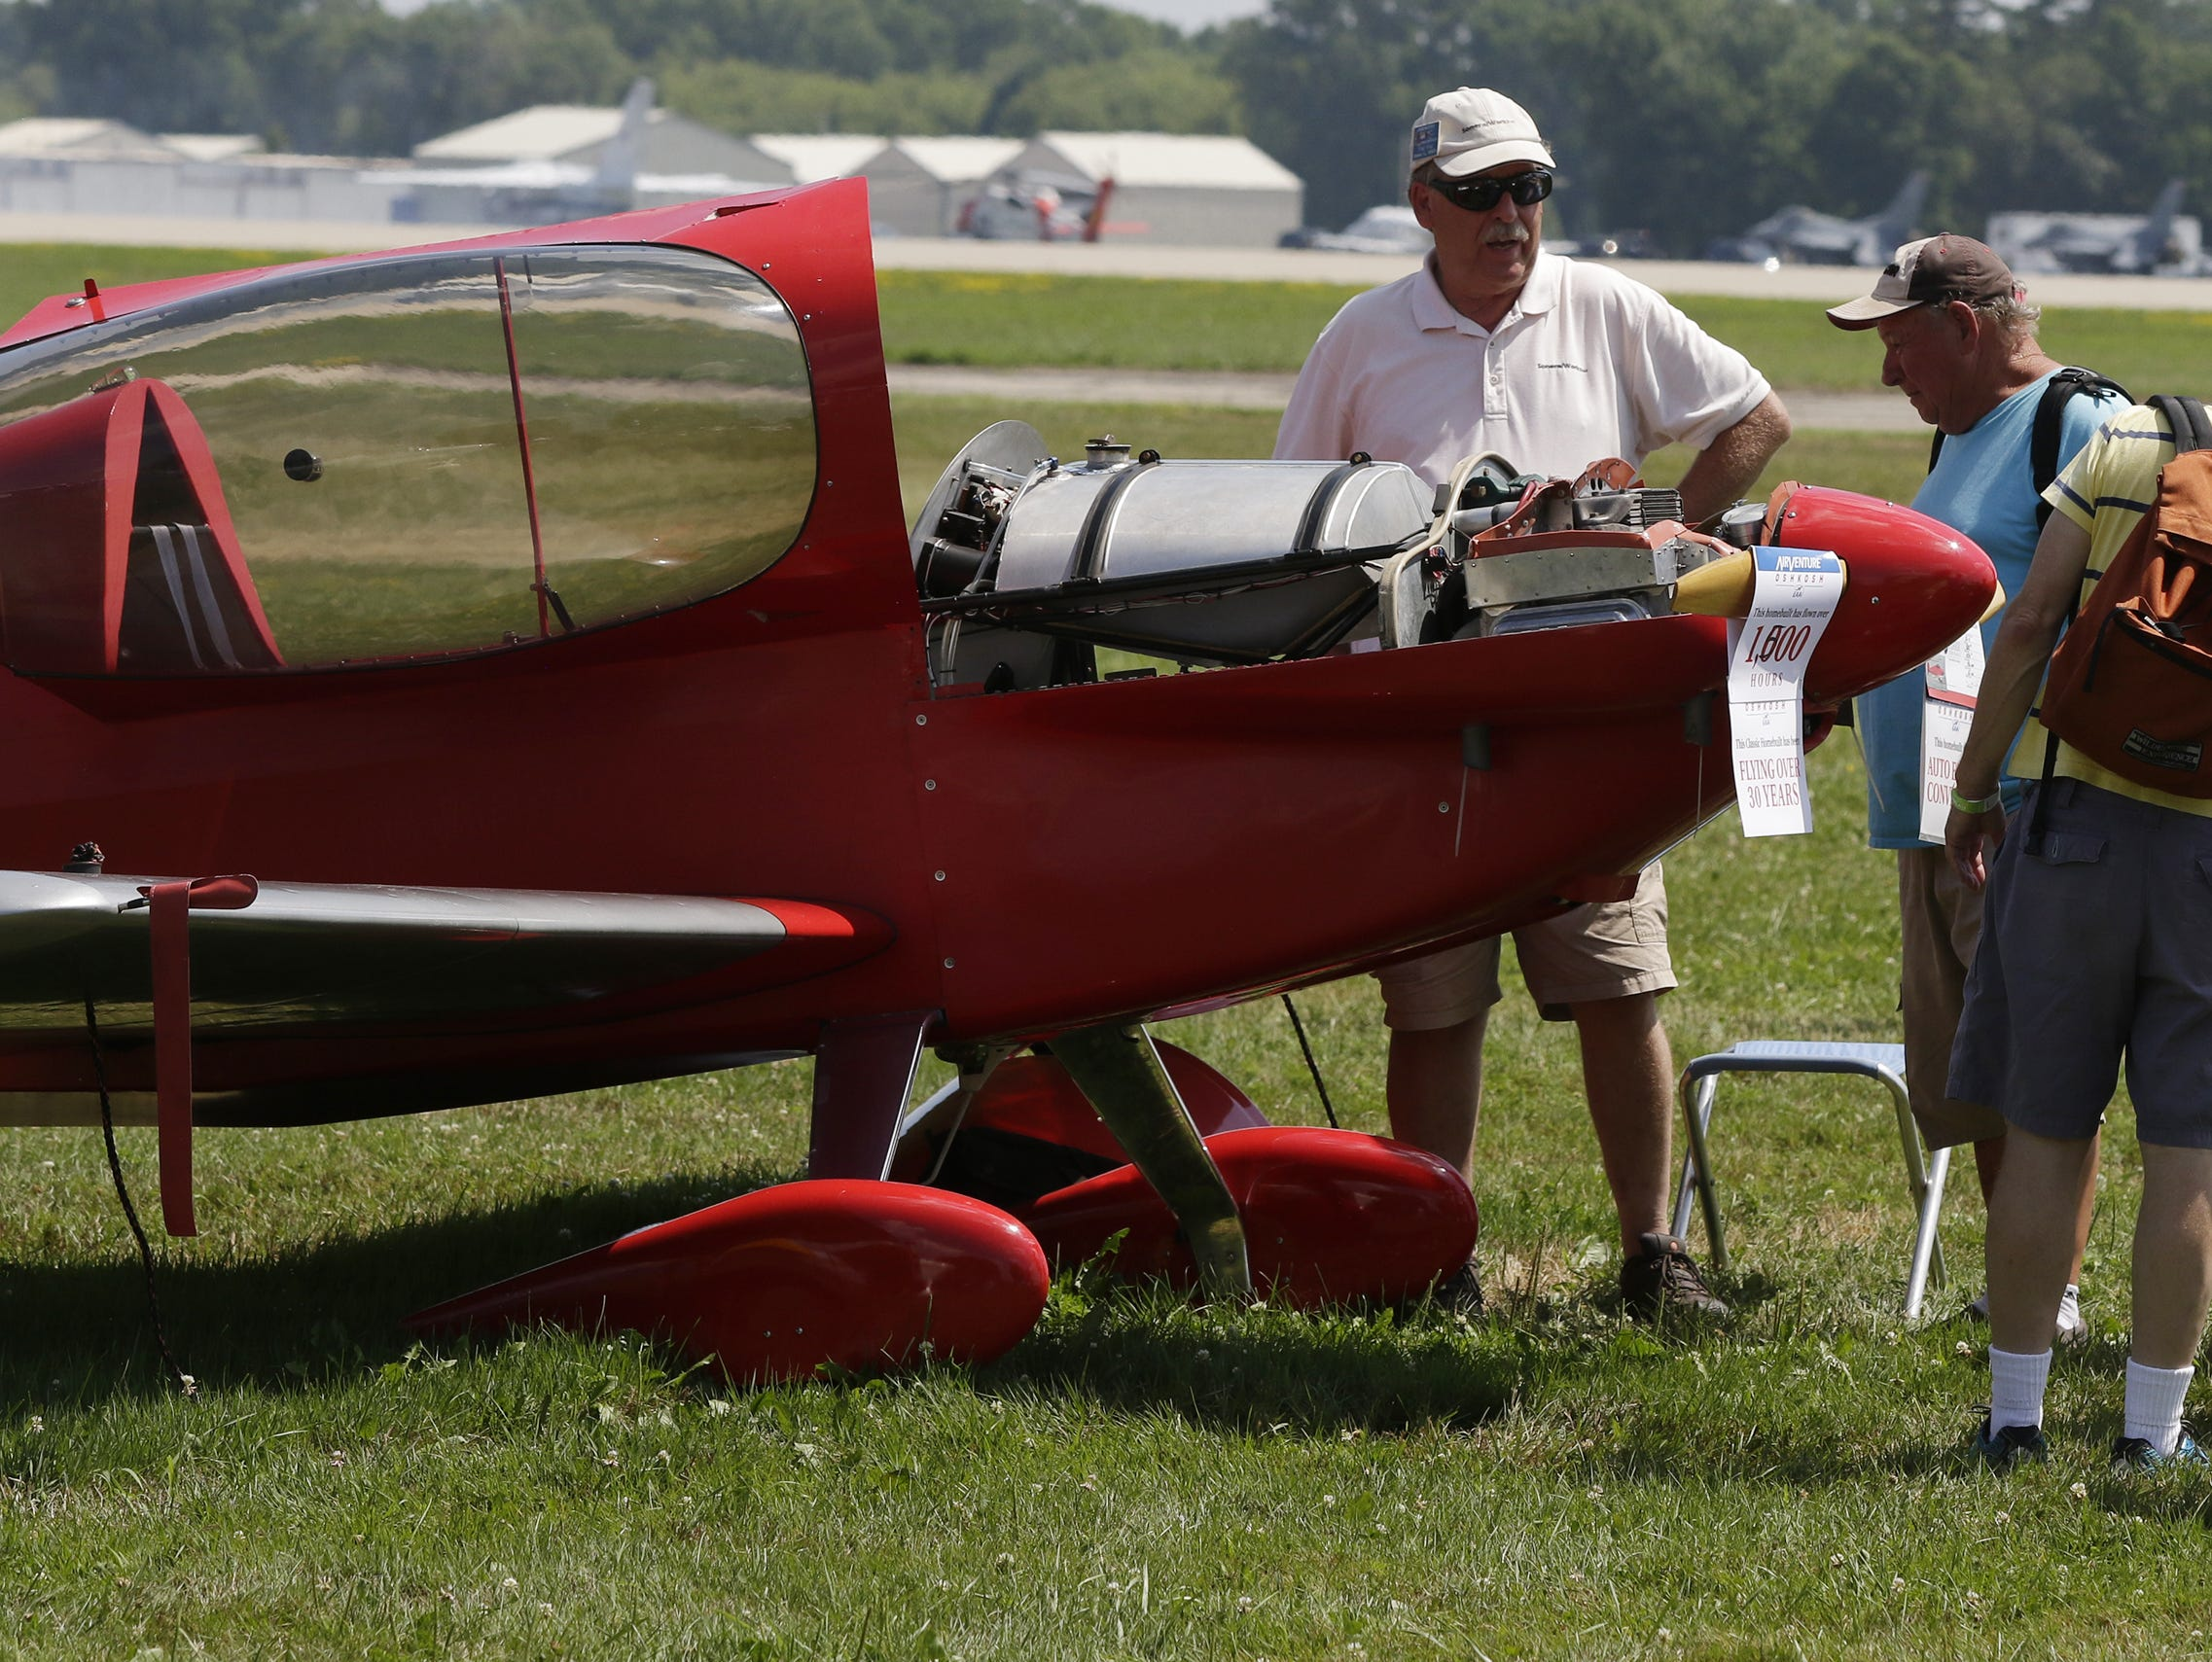 Fred Keip of SoneraiWorks, Franksville, Wis., shows off his car engine powered Sonerai plane that has over 1500 hours on the engine, Tuesday, July 24, 2018, in Oshkosh, Wis.  The 66th annual Experimental Aircraft Association Fly-In Convention, AirVenture 2018 draws over 500,000 people annually to the area.  The convention runs through July 29. Joe Sienkiewicz/USA Today NETWORK-Wisconsin